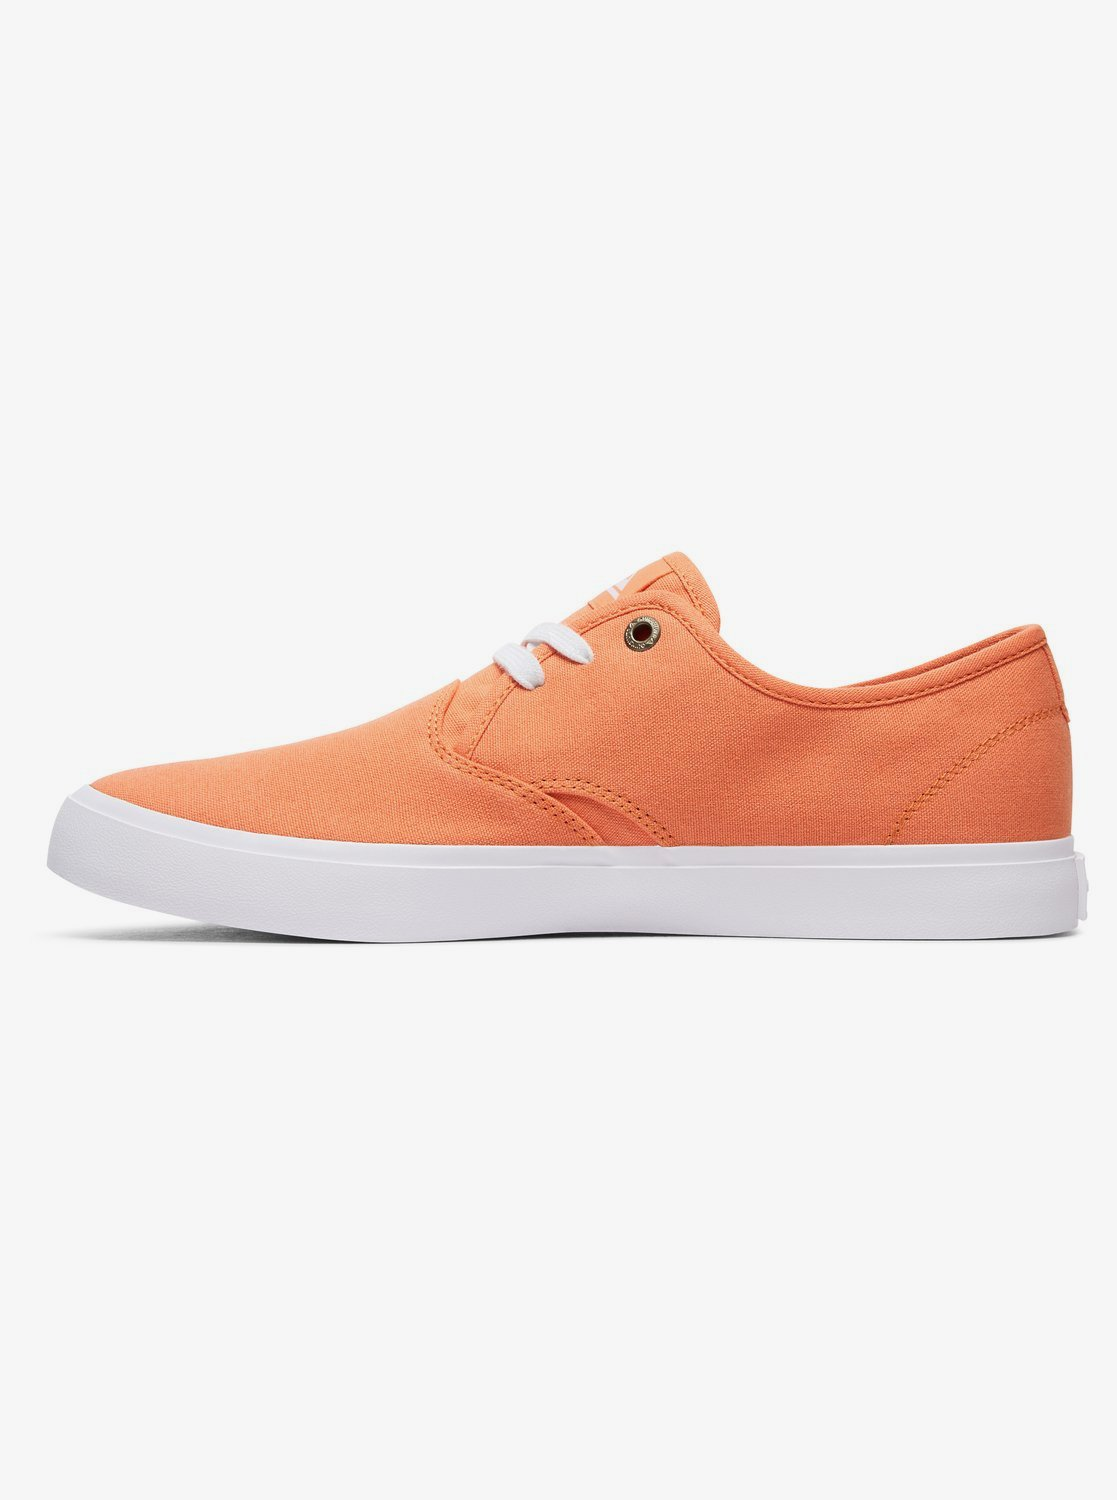 Quiksilver Shorebreak M, Zapatillas Hombre, Naranja (Orange